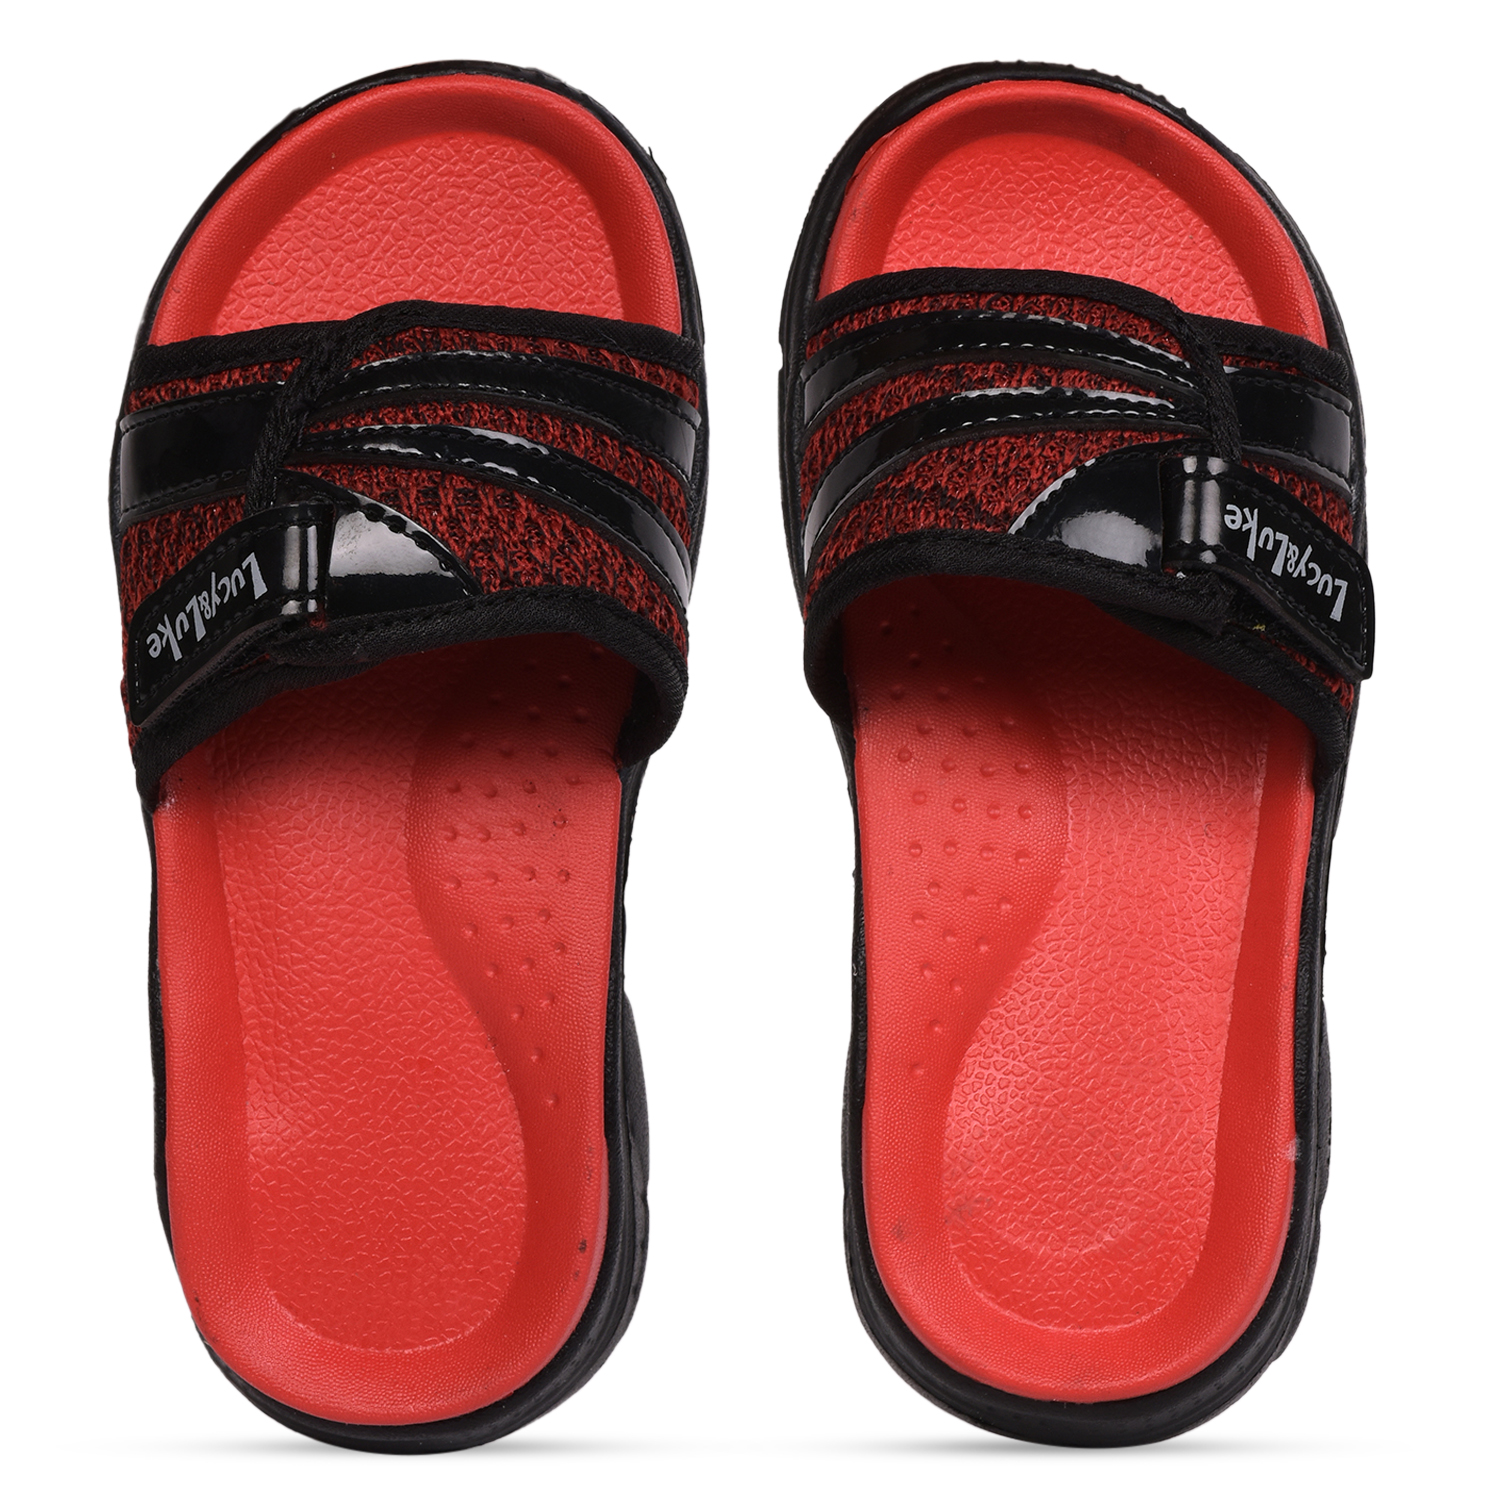 Liberty | Liberty Lucy & Luke Red Slippers RICKY-2S For - Boys